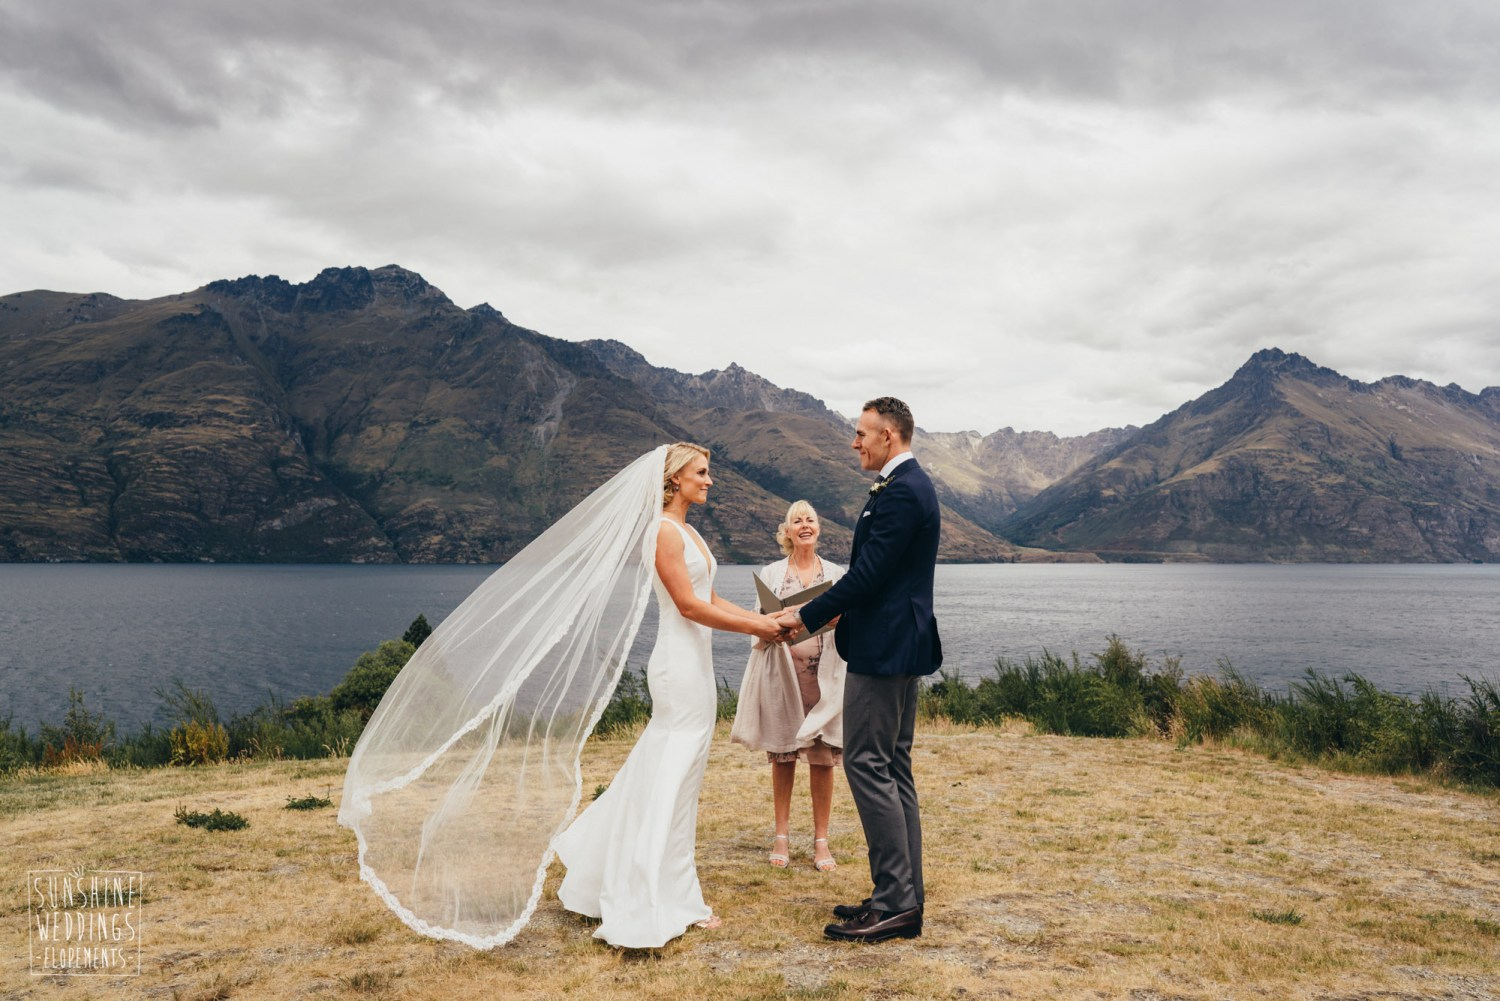 Lake Wakatipu wedding ceremony